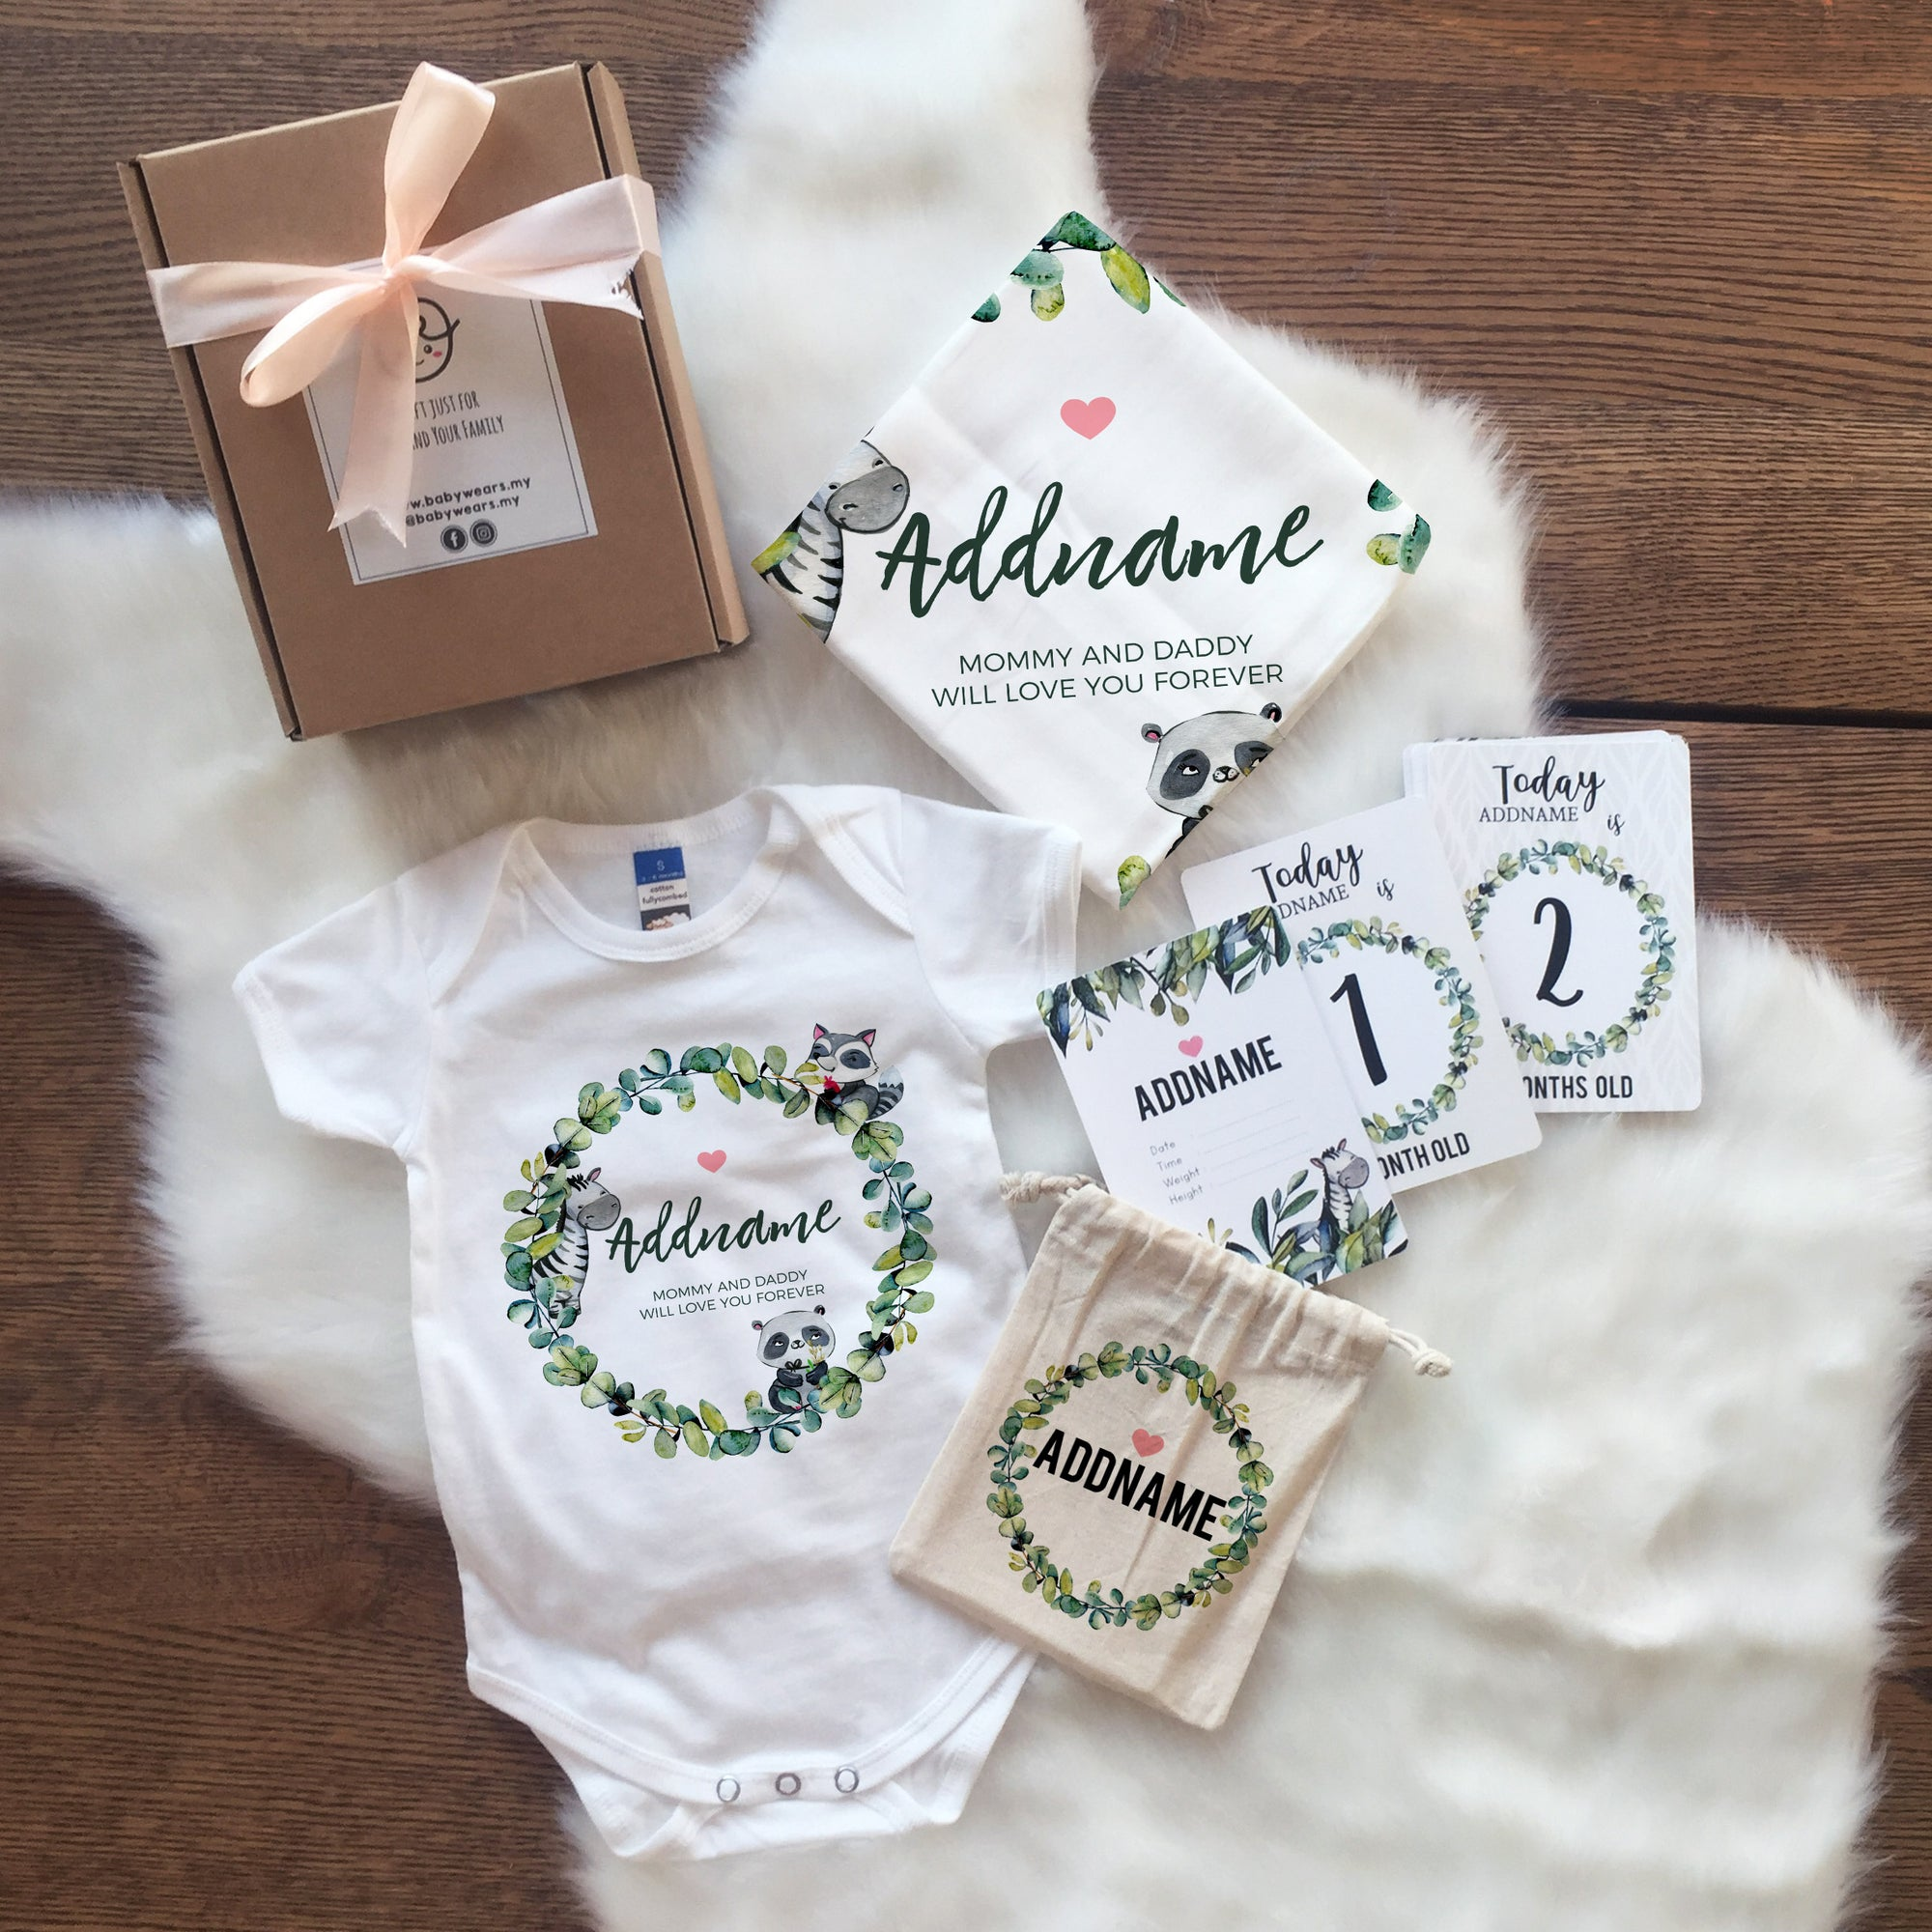 Watercolour Cute Nature and Animal Newborn Gift Set with Personalised Milestone Cards (UNDER RM 100)